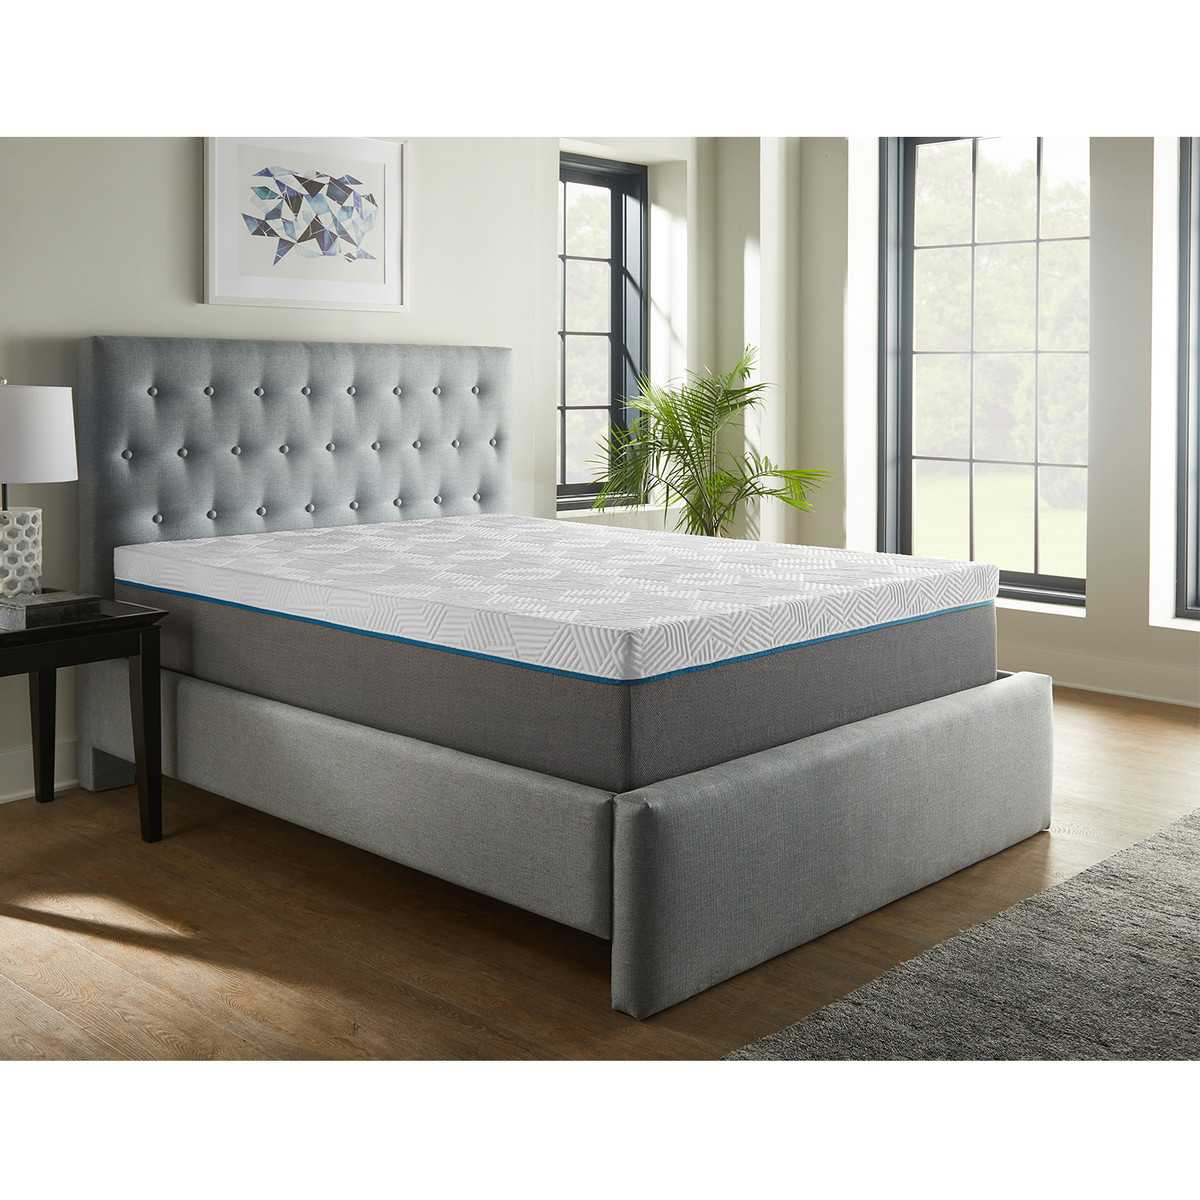 Renue Fourteen Inch Memory Foam Mattress and Box